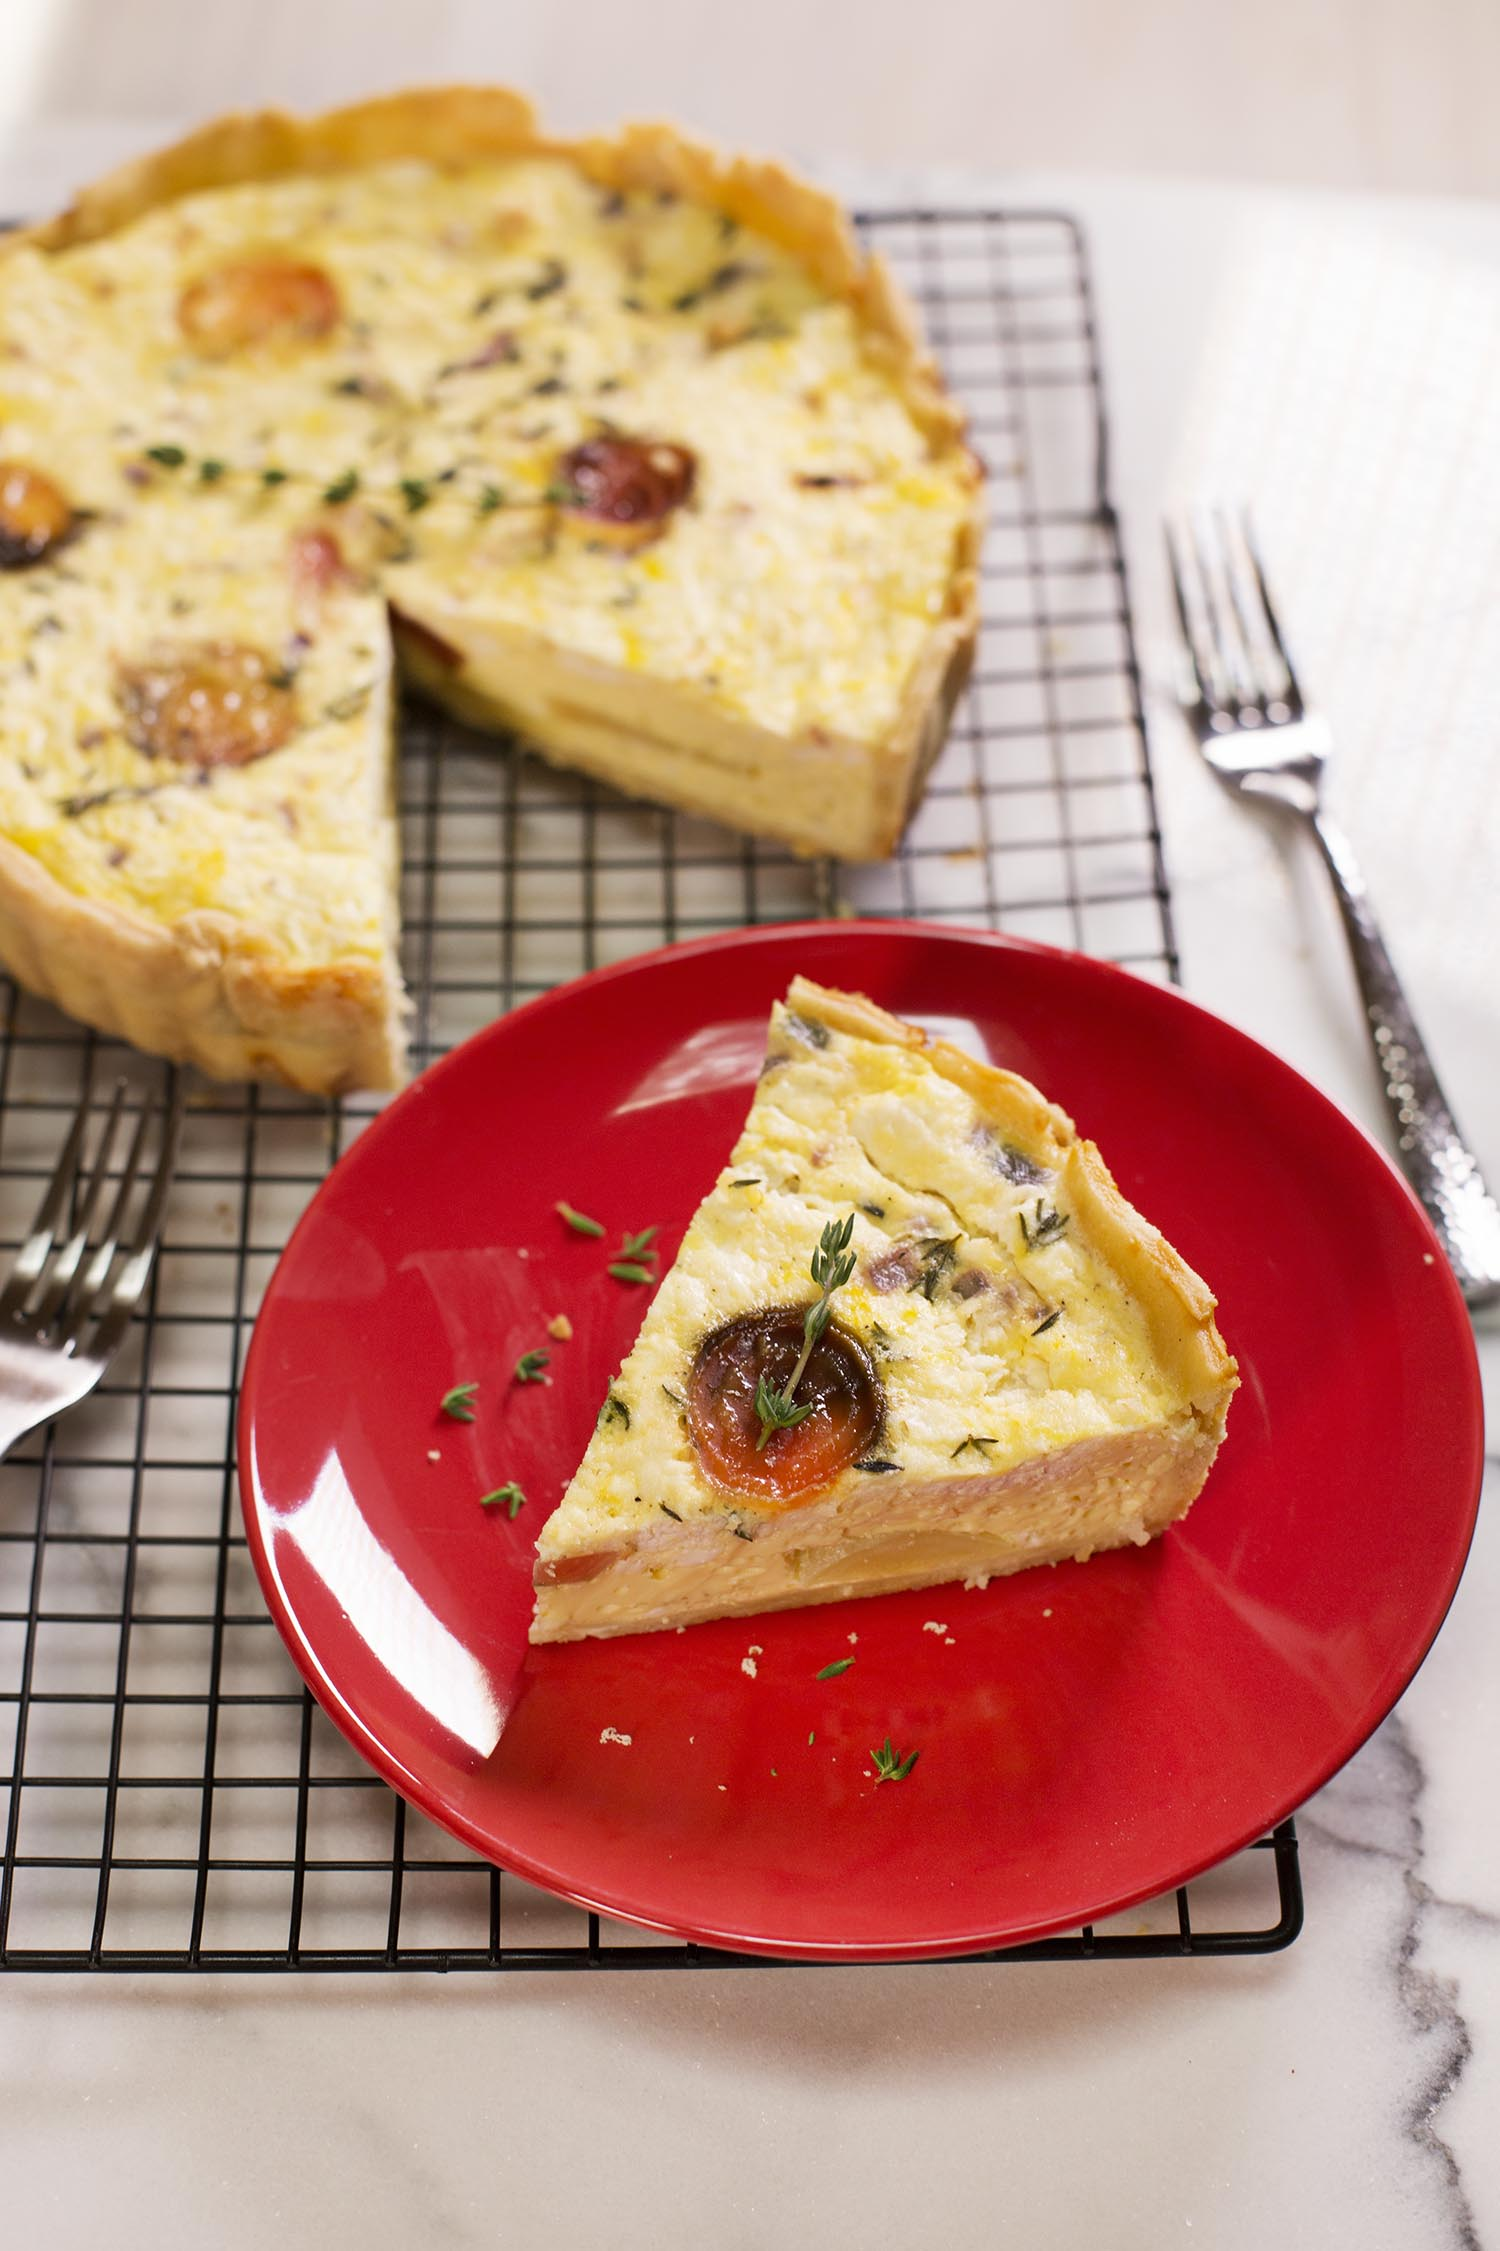 Beet and goat cheese quiche (via sleekbawd.com)